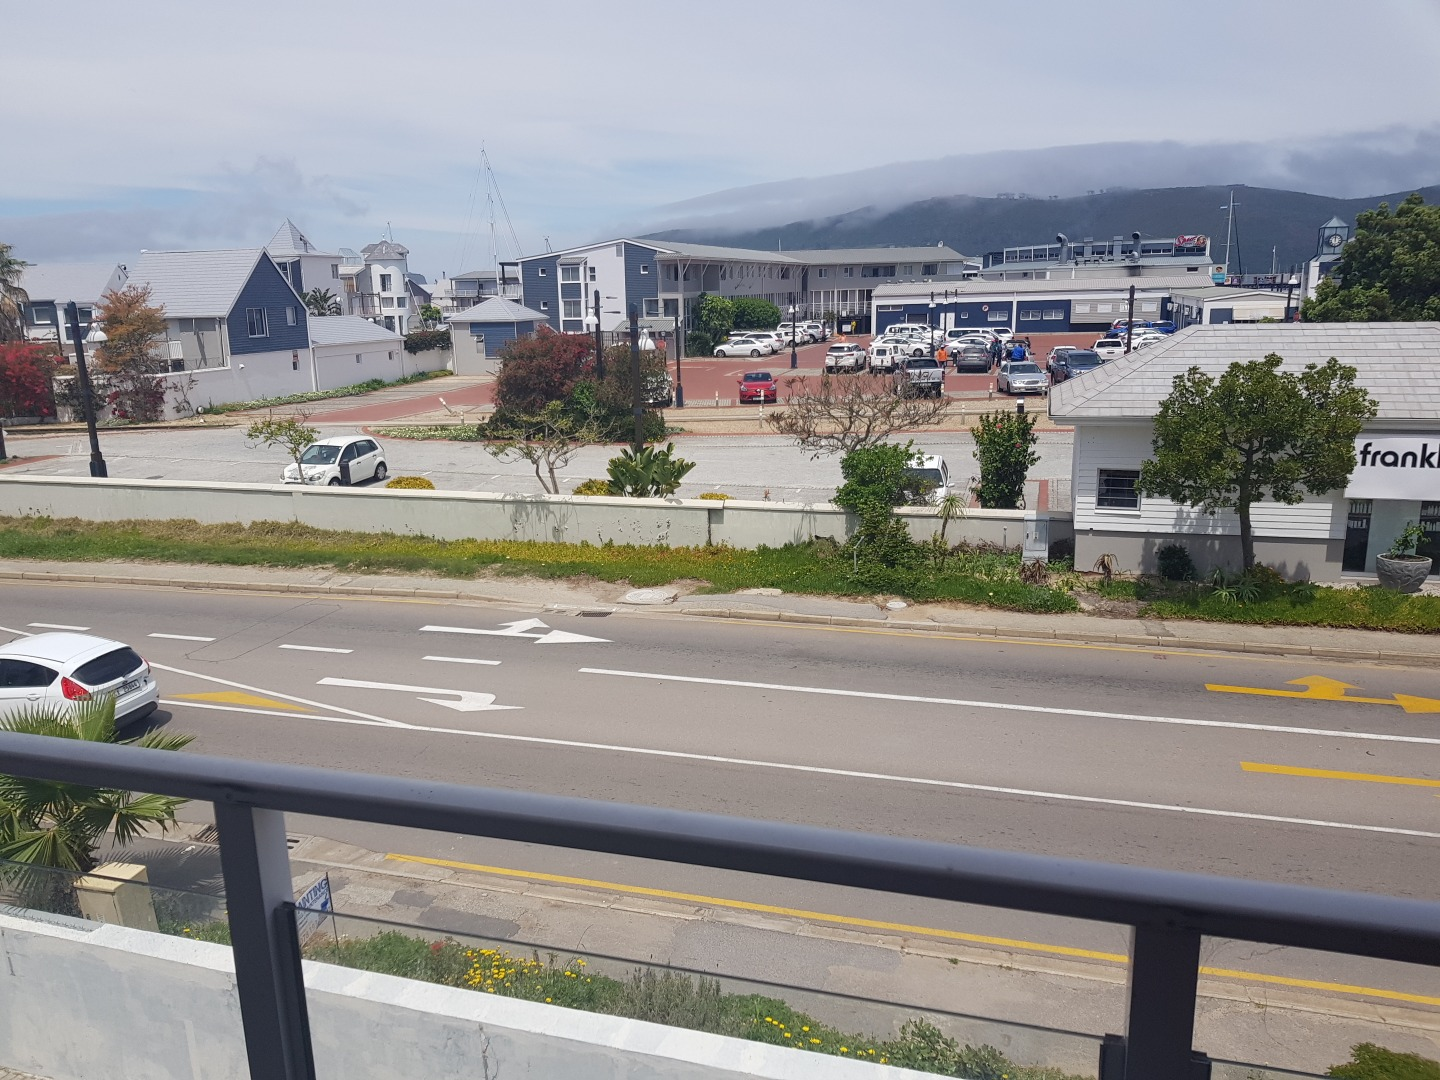 3 Bedroom Apartment / Flat For Sale in Knysna Central